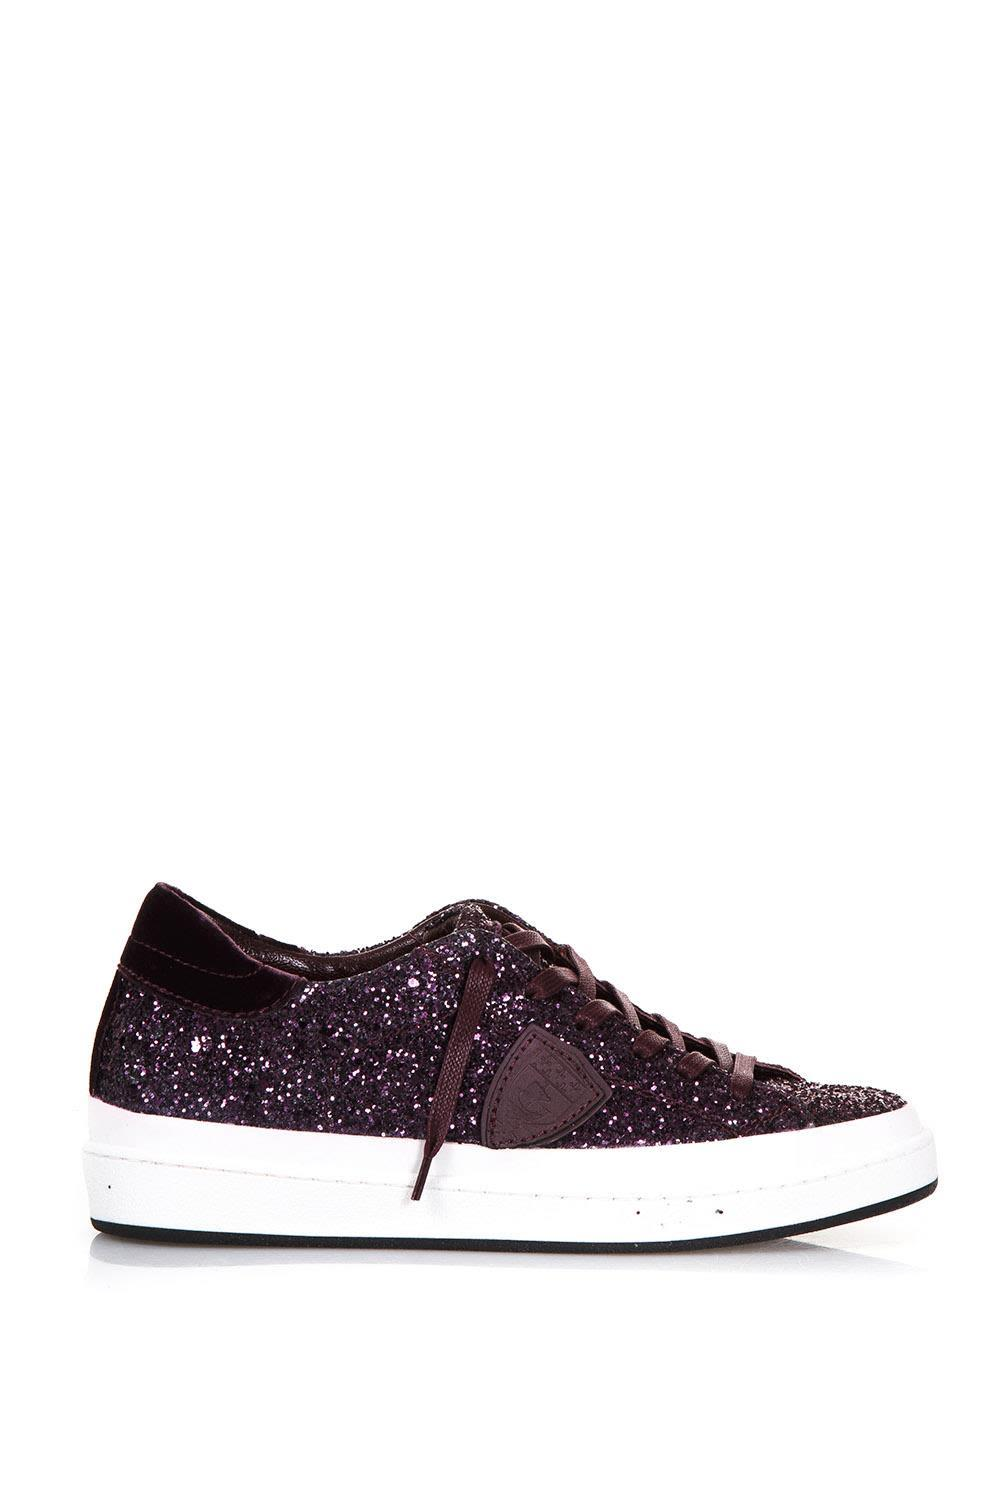 Philippe Model Glittered Leather Low-top Sneakers In Cyclamen